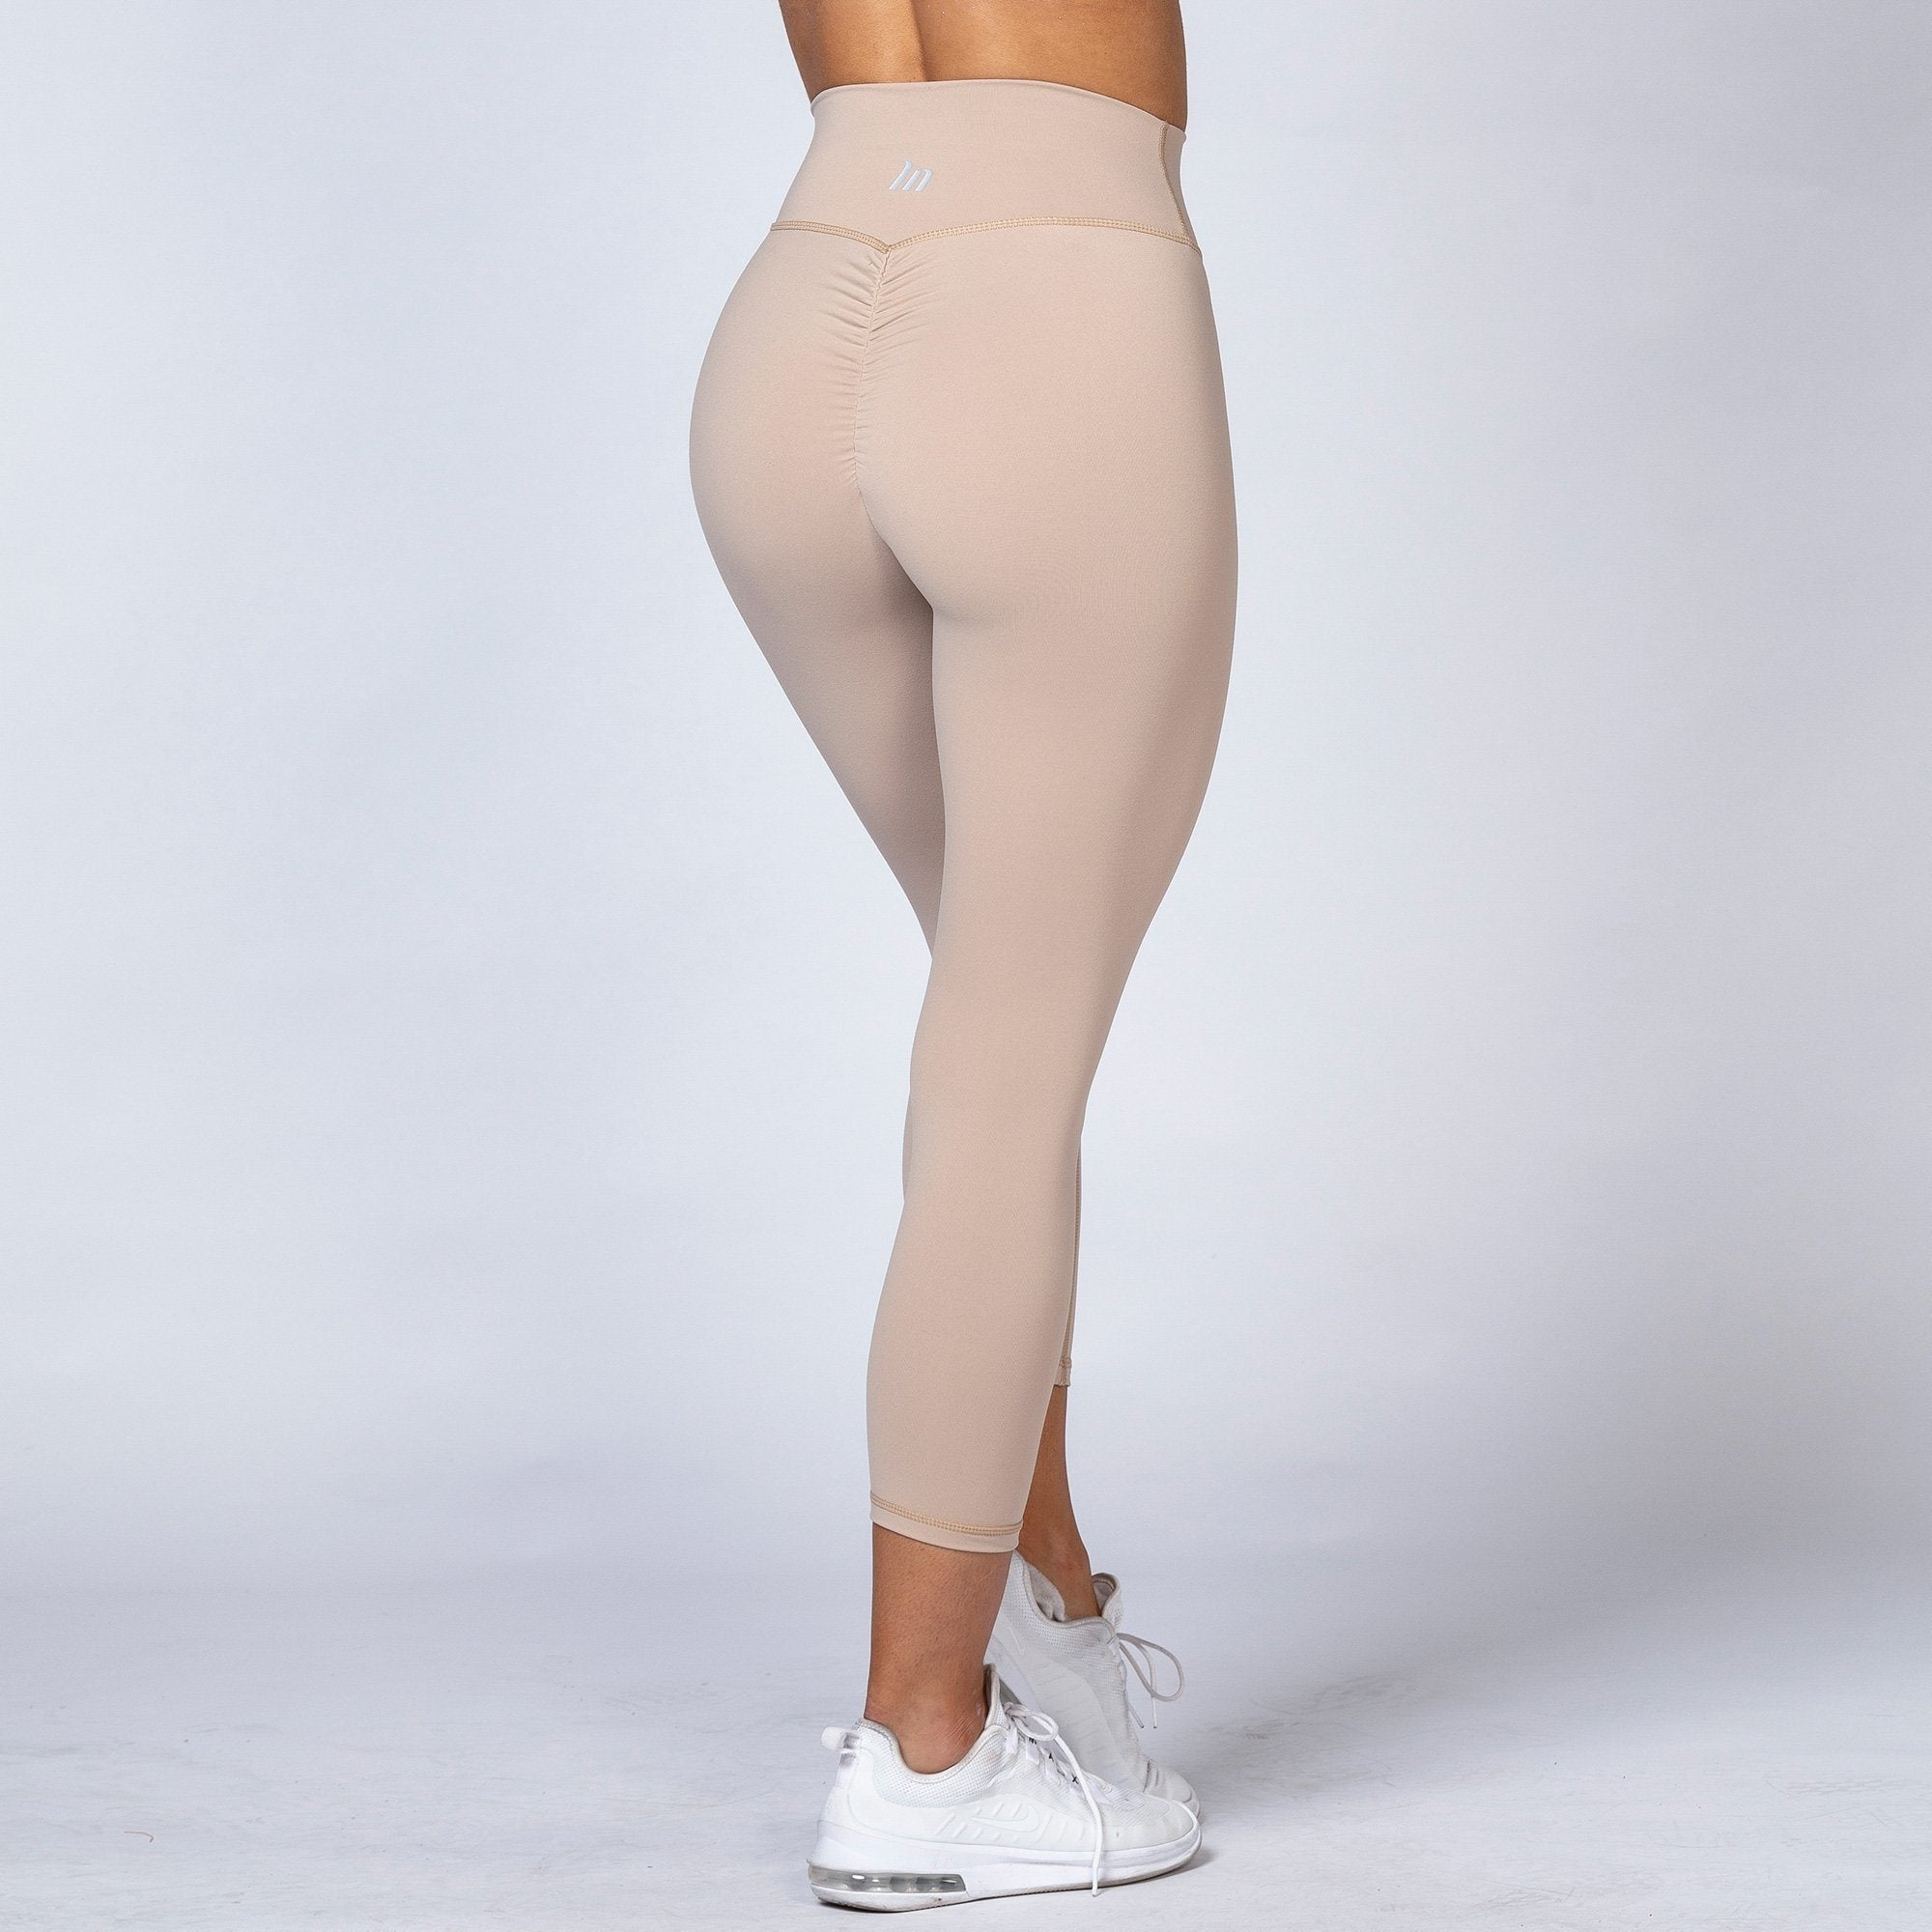 Muscle Nation 7/8 High Waist Scrunch Leggings - Beige